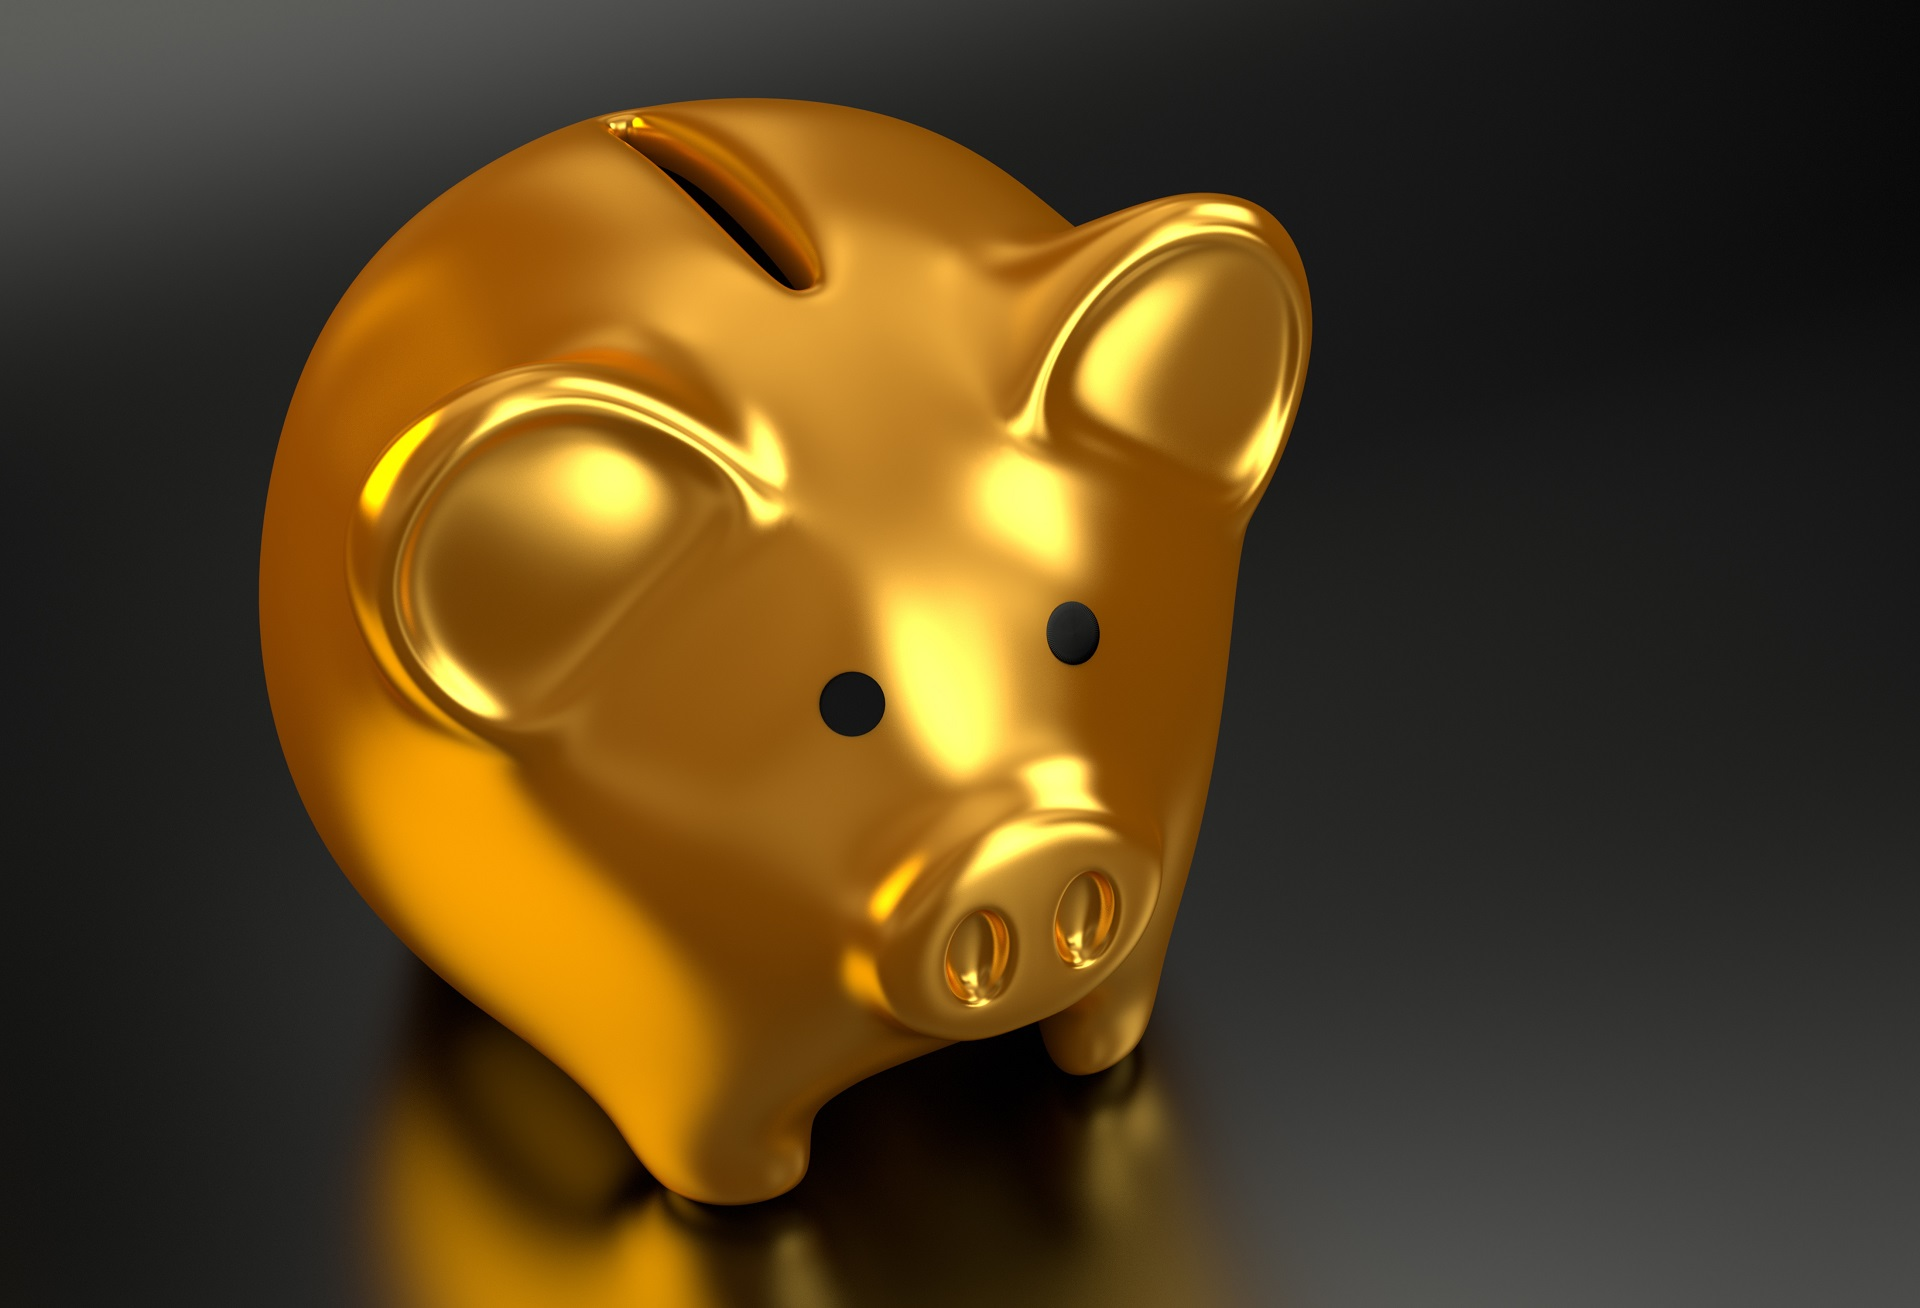 piggy-bank-2889046-1920x1308-cropped